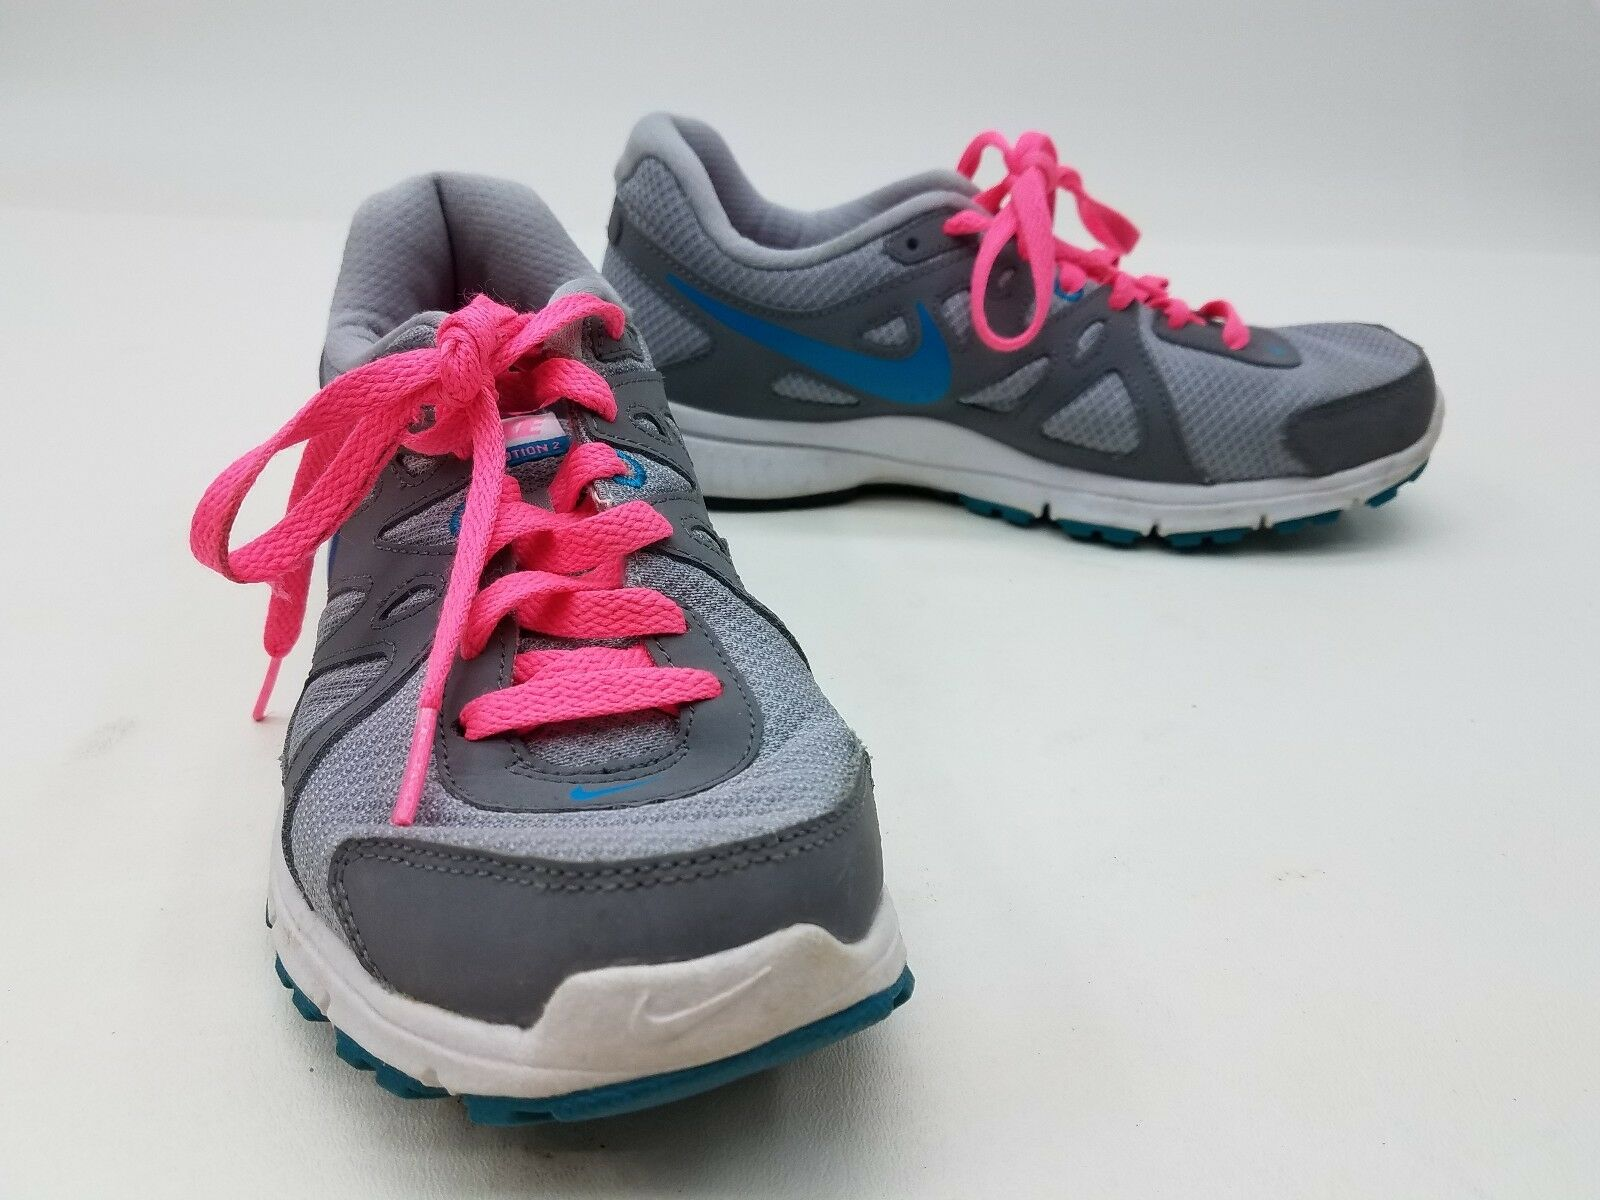 Nike Revolution 2 Athletic Running Shoes Women Comfortable Cheap and beautiful fashion